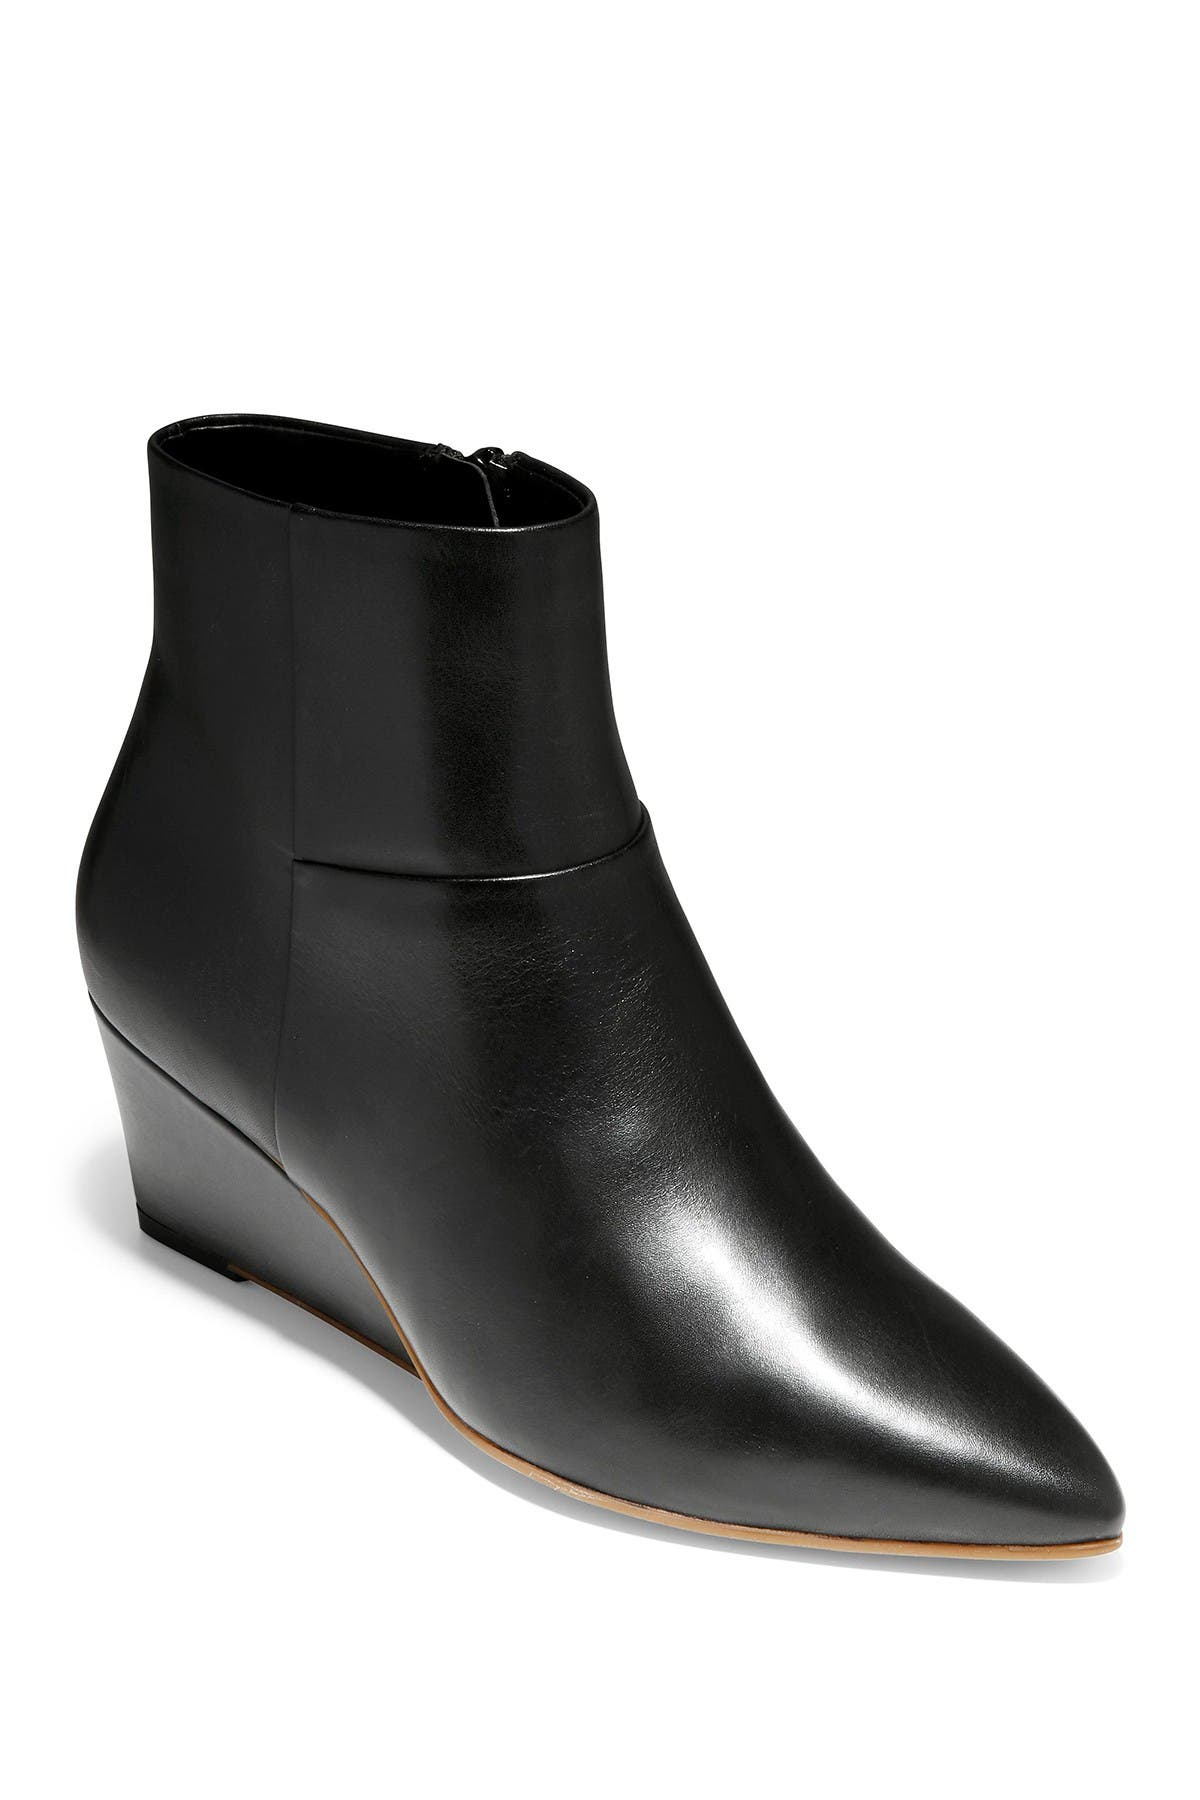 Image of Cole Haan Eneida Leather Wedge Bootie